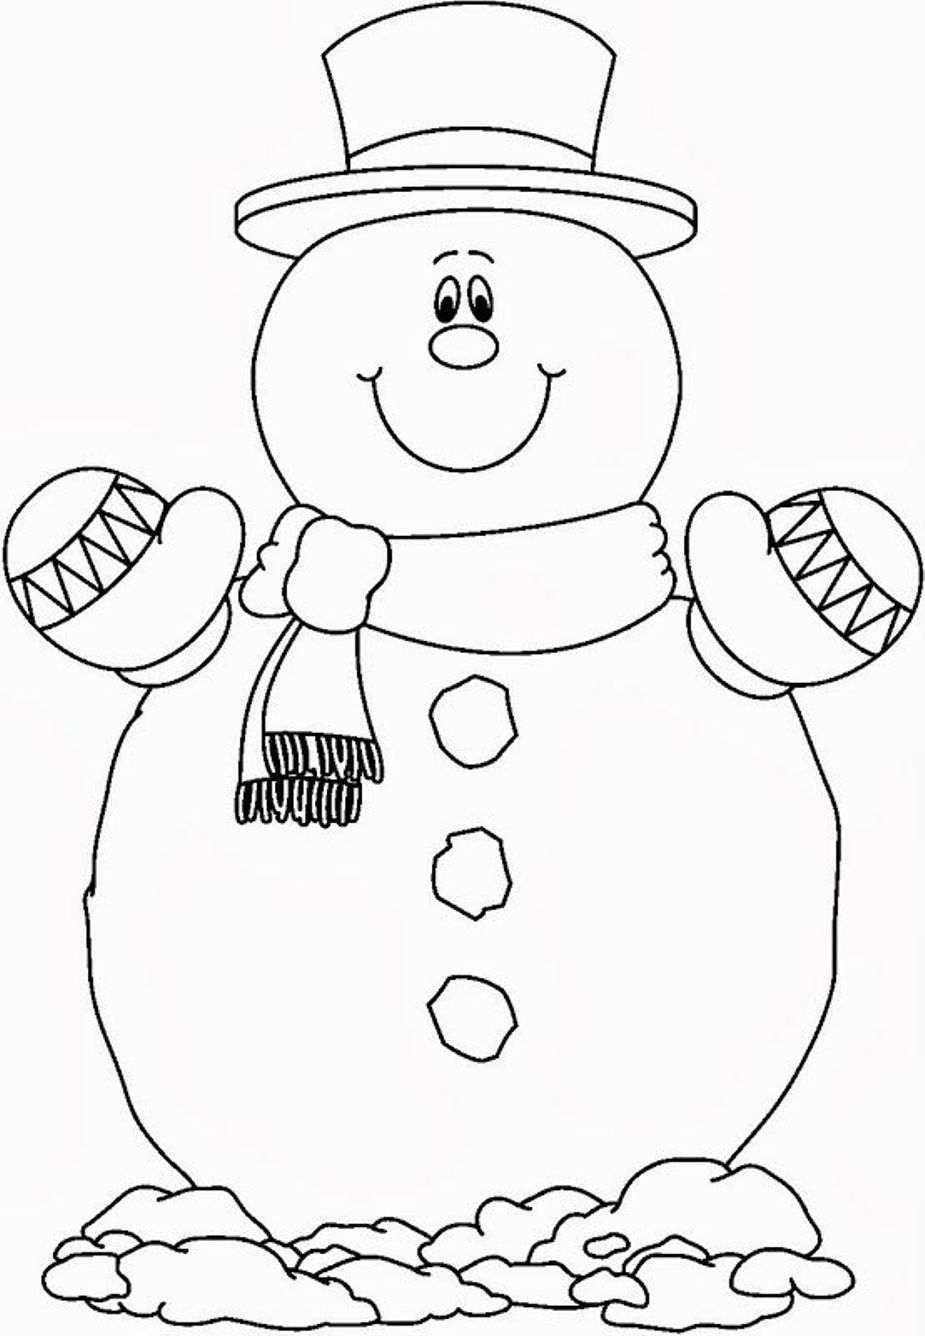 snowman coloring sheet snowman coloring pages to download and print for free sheet coloring snowman